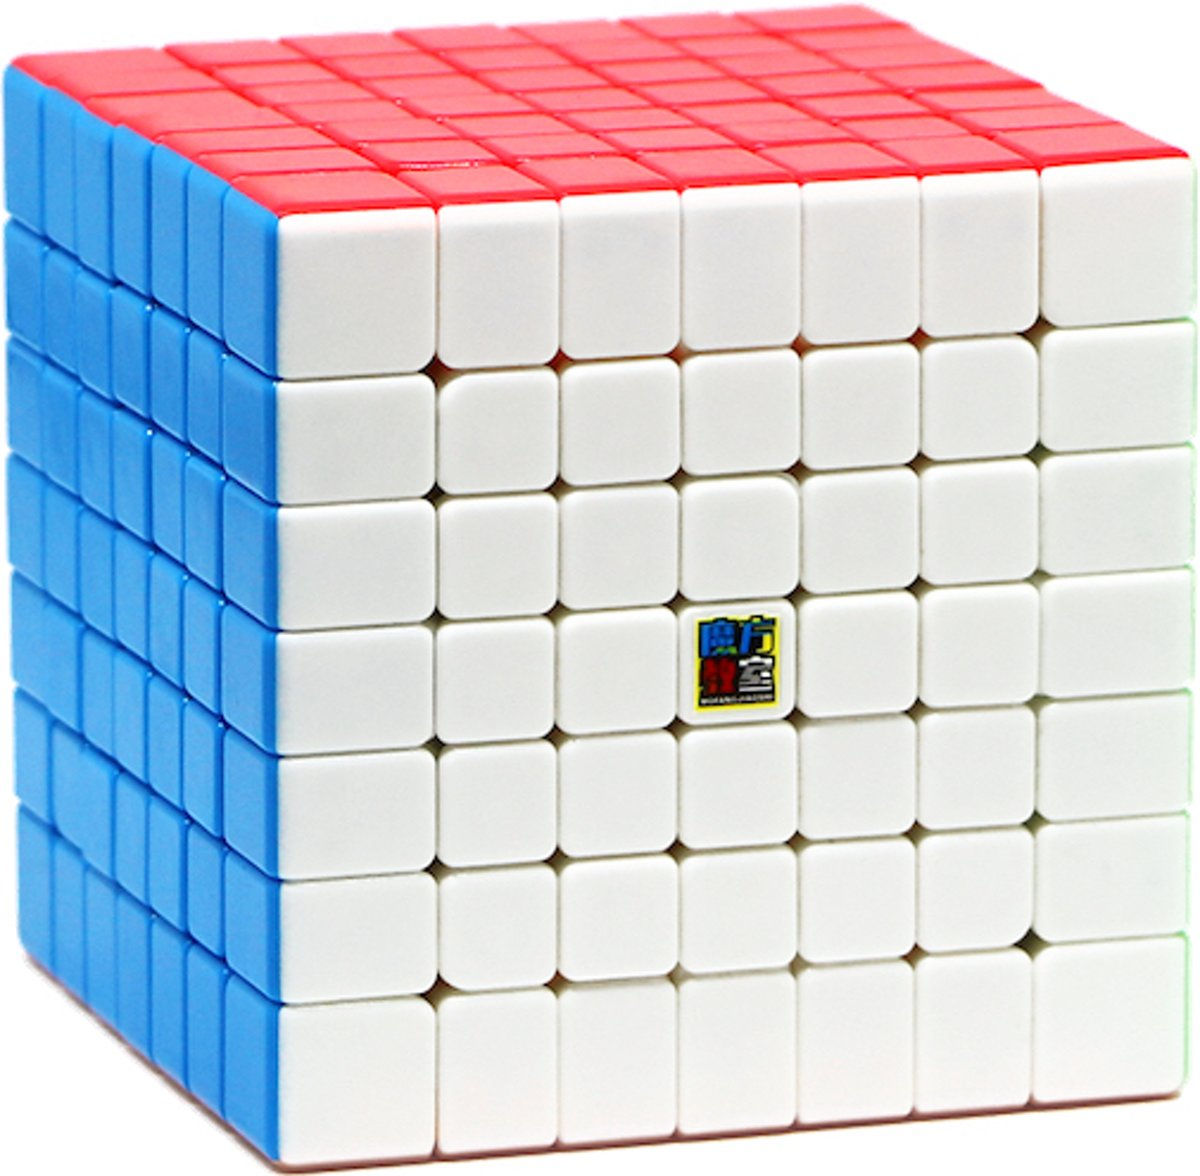 7x7 Speedcube - Rubik Cube- Stickerless Kubus - Moyu Meilong